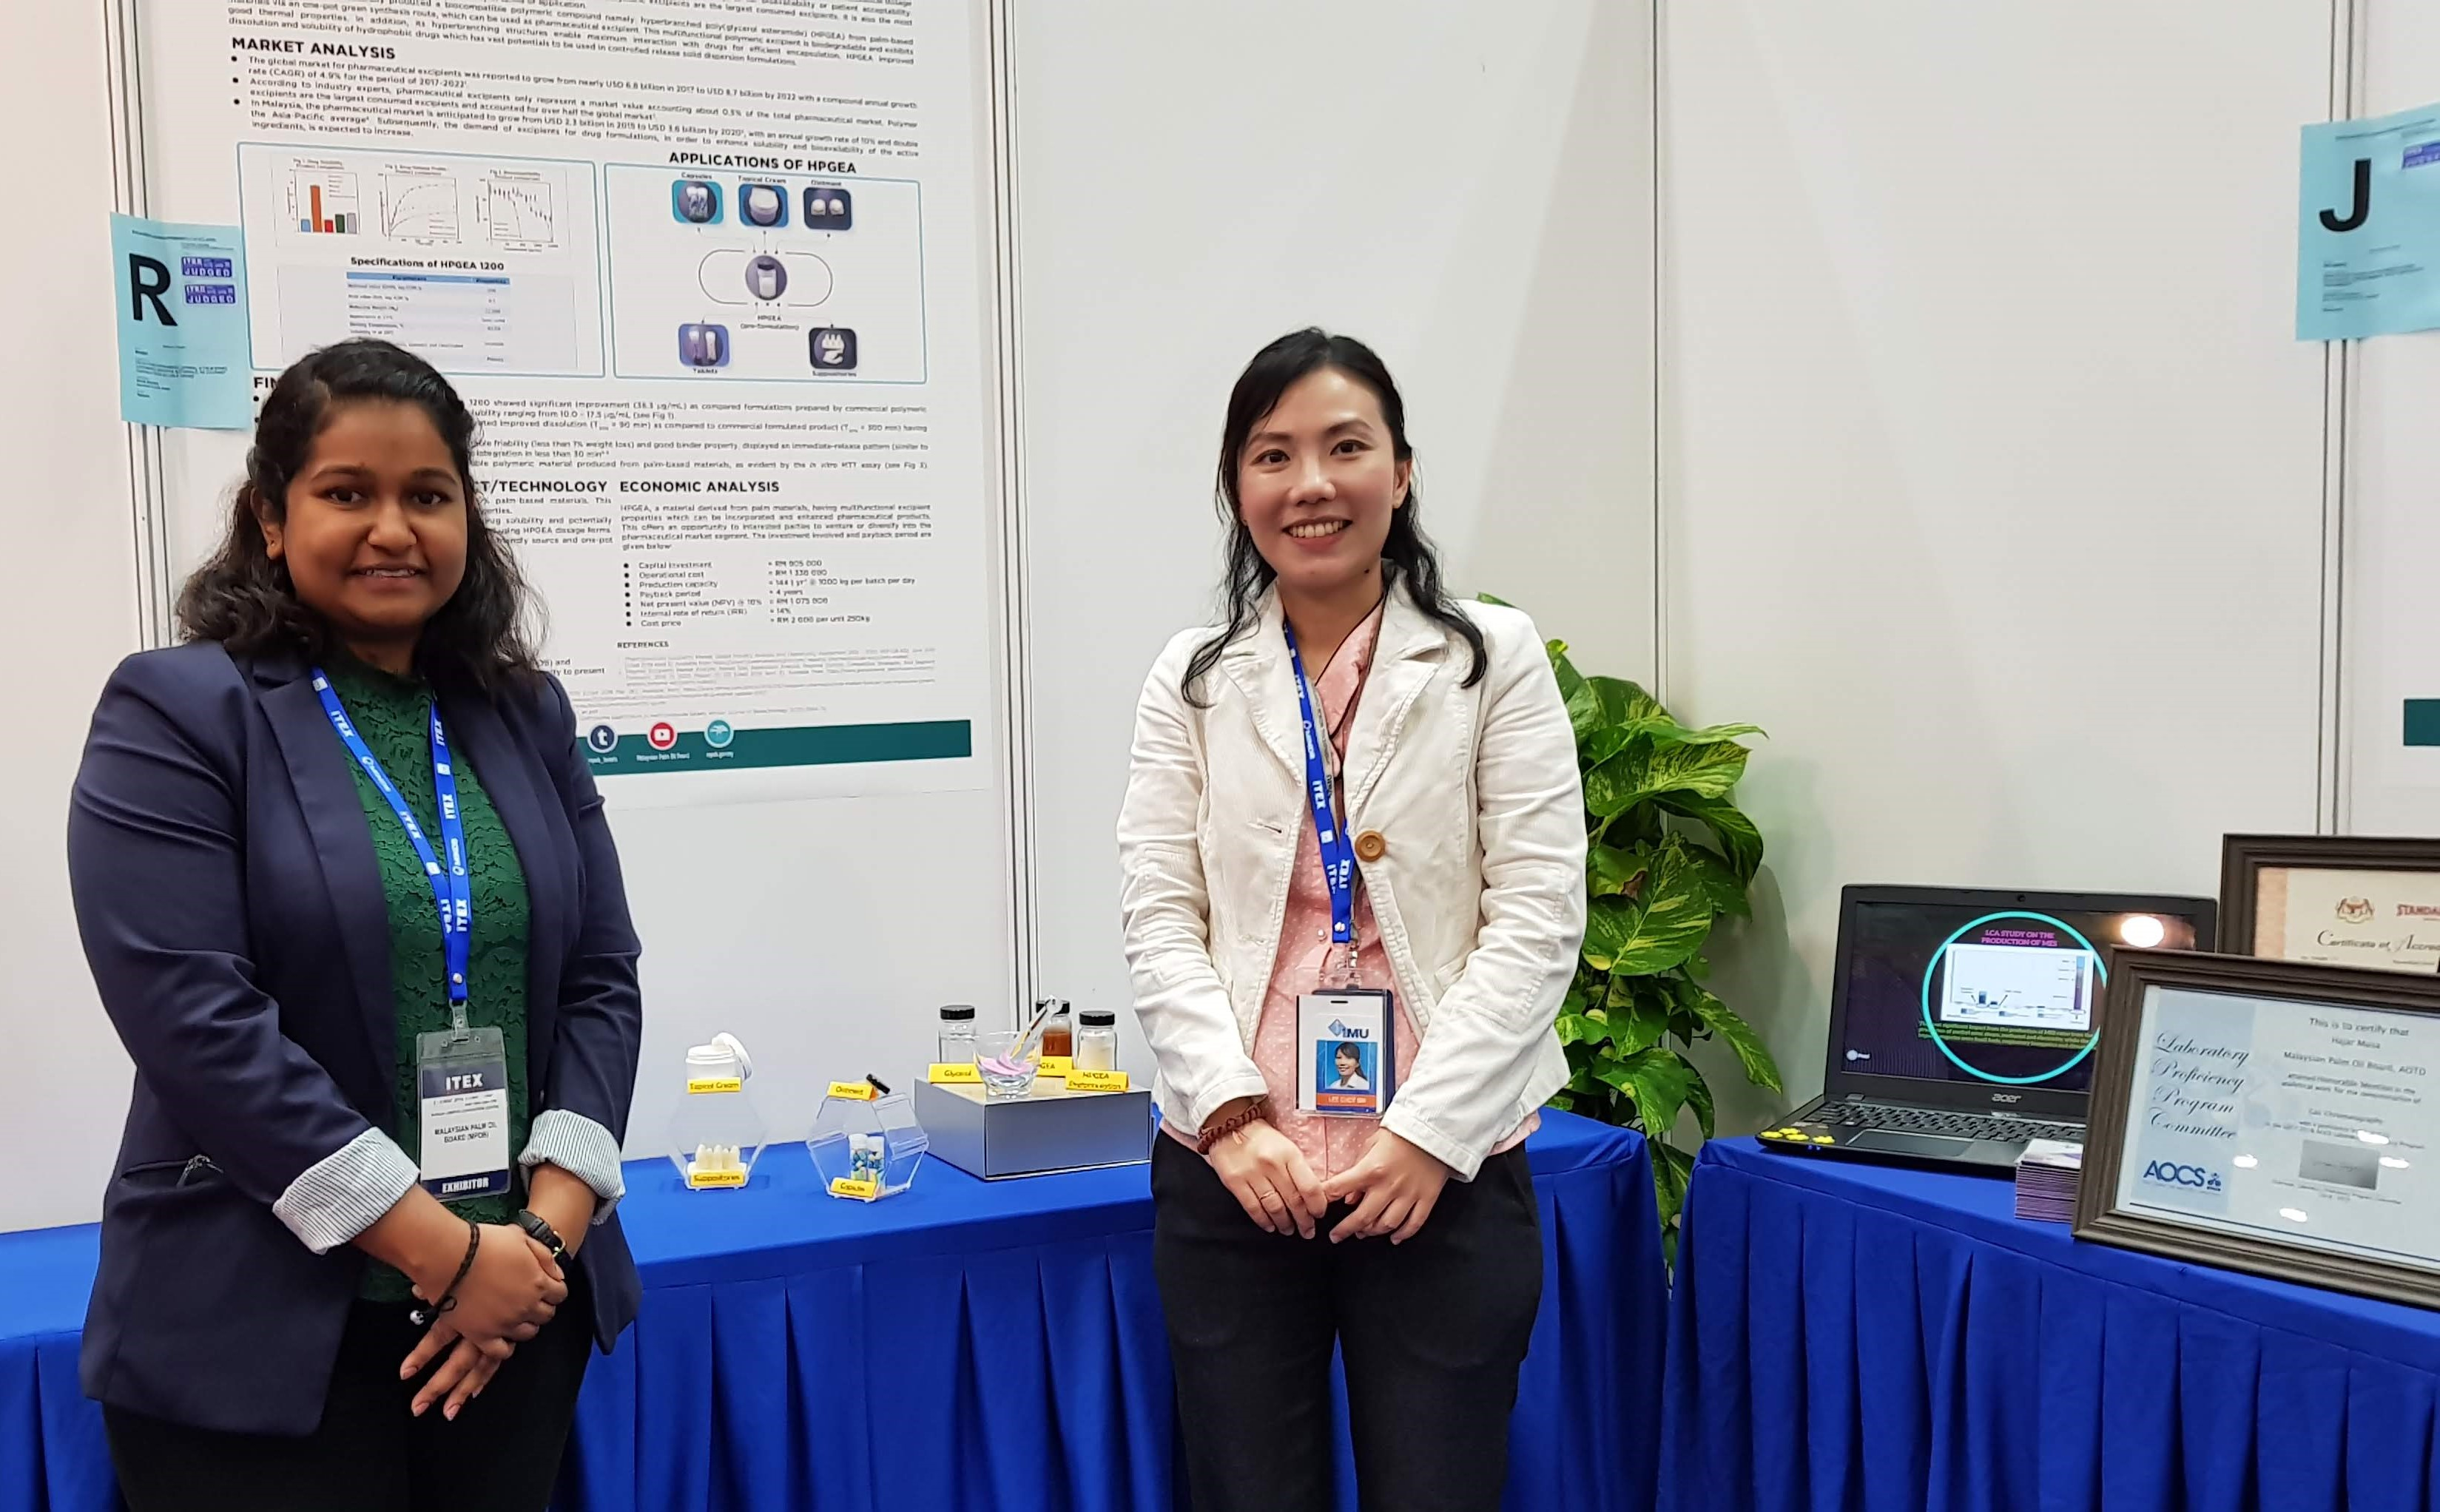 A collaborative research between IMU and Malaysian Palm Oil Board won a silver medal under the category of 'Medical and Health' at ITEX 2019.